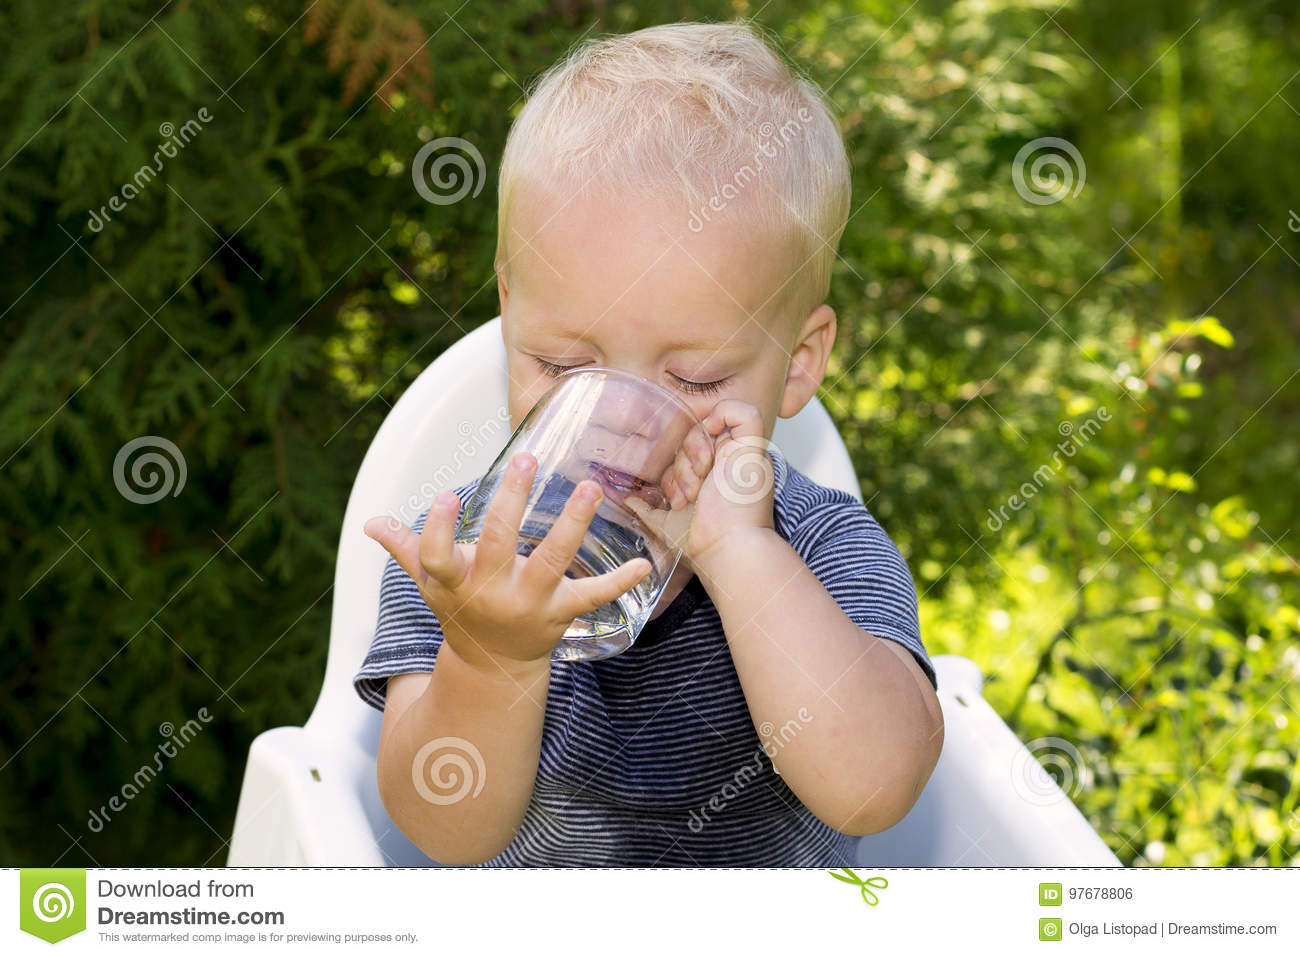 Funny wet baby boy trying to drink water from the glass independently